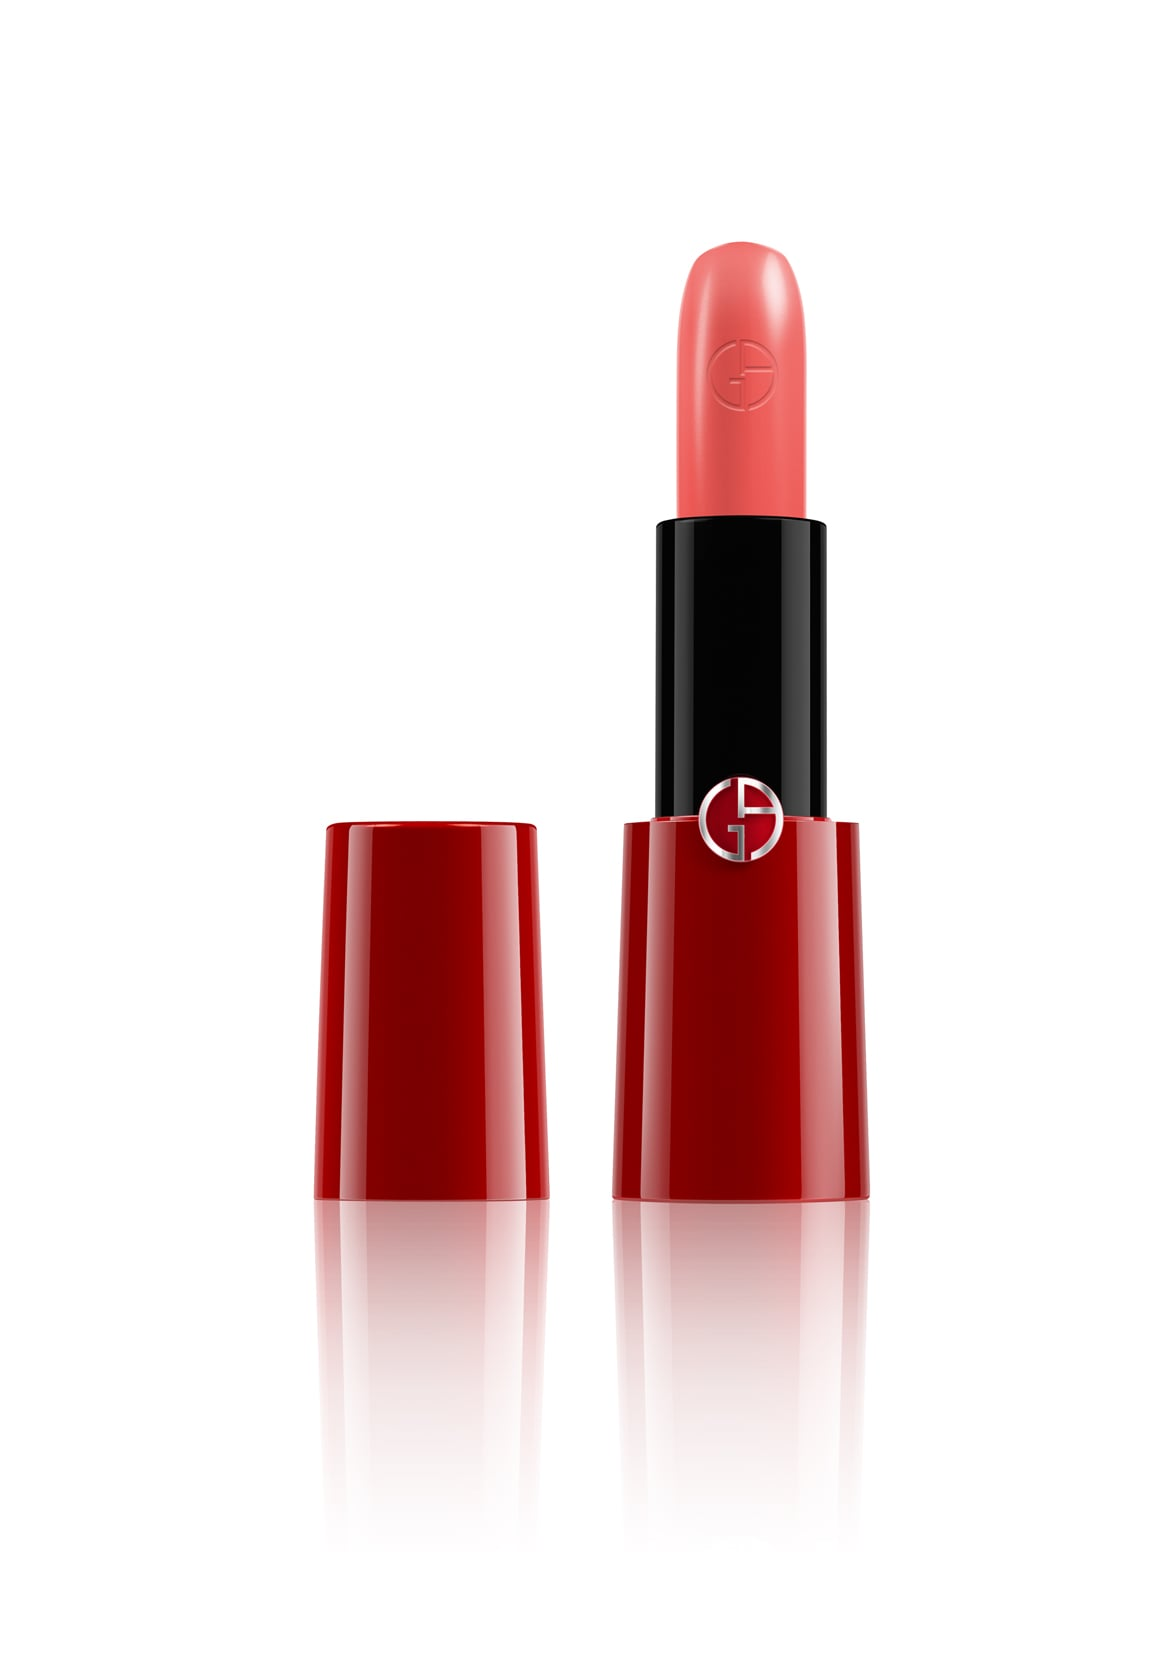 So, you think you're pretty advanced using CC creams for your face? Think again. Armani Beauty has introduced the first CC lipstick (that stands for Color & Care) with its new Rouge Ecstasy lipstick ($34). The whole 36-shade range comes in sleek magnetic tubes that close with a satisfying click, and they feel more like lip balm than the super highly pigmented lipstick that they are. Try Tokyo for a major pop! — Melissa Liebling-Goldberg, fashion and beauty director